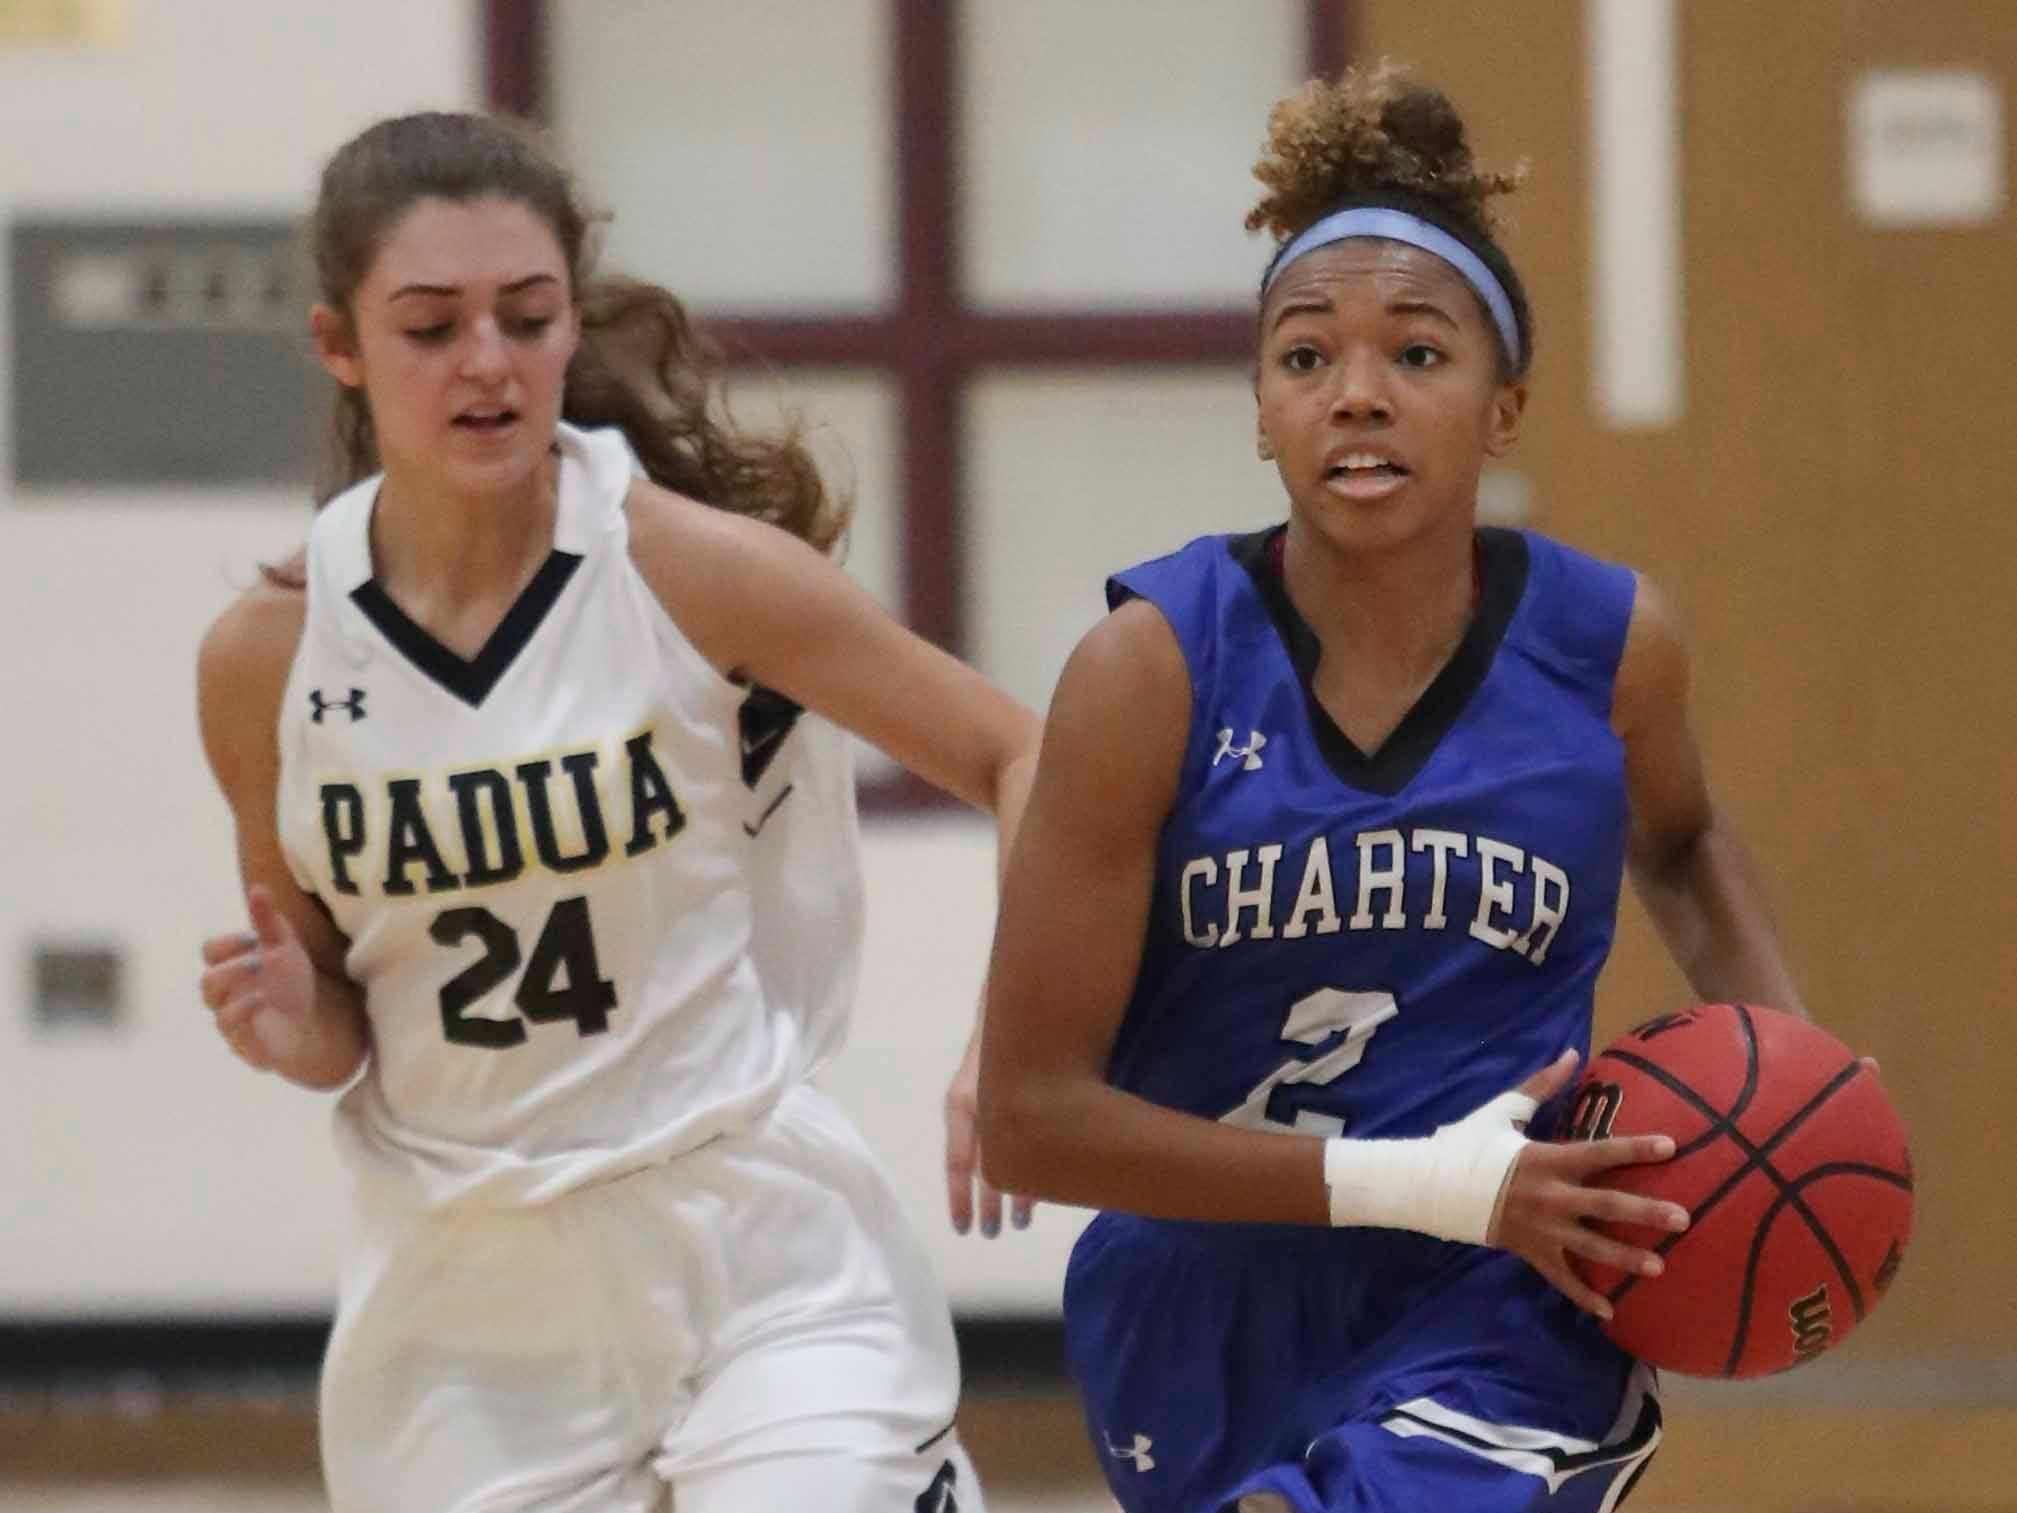 Charter's Nia Anderson moves ahead of Padua's Skylar Salvo in the second quarter of Padua's win in the Diamond State Classic Friday at the St. E Center.